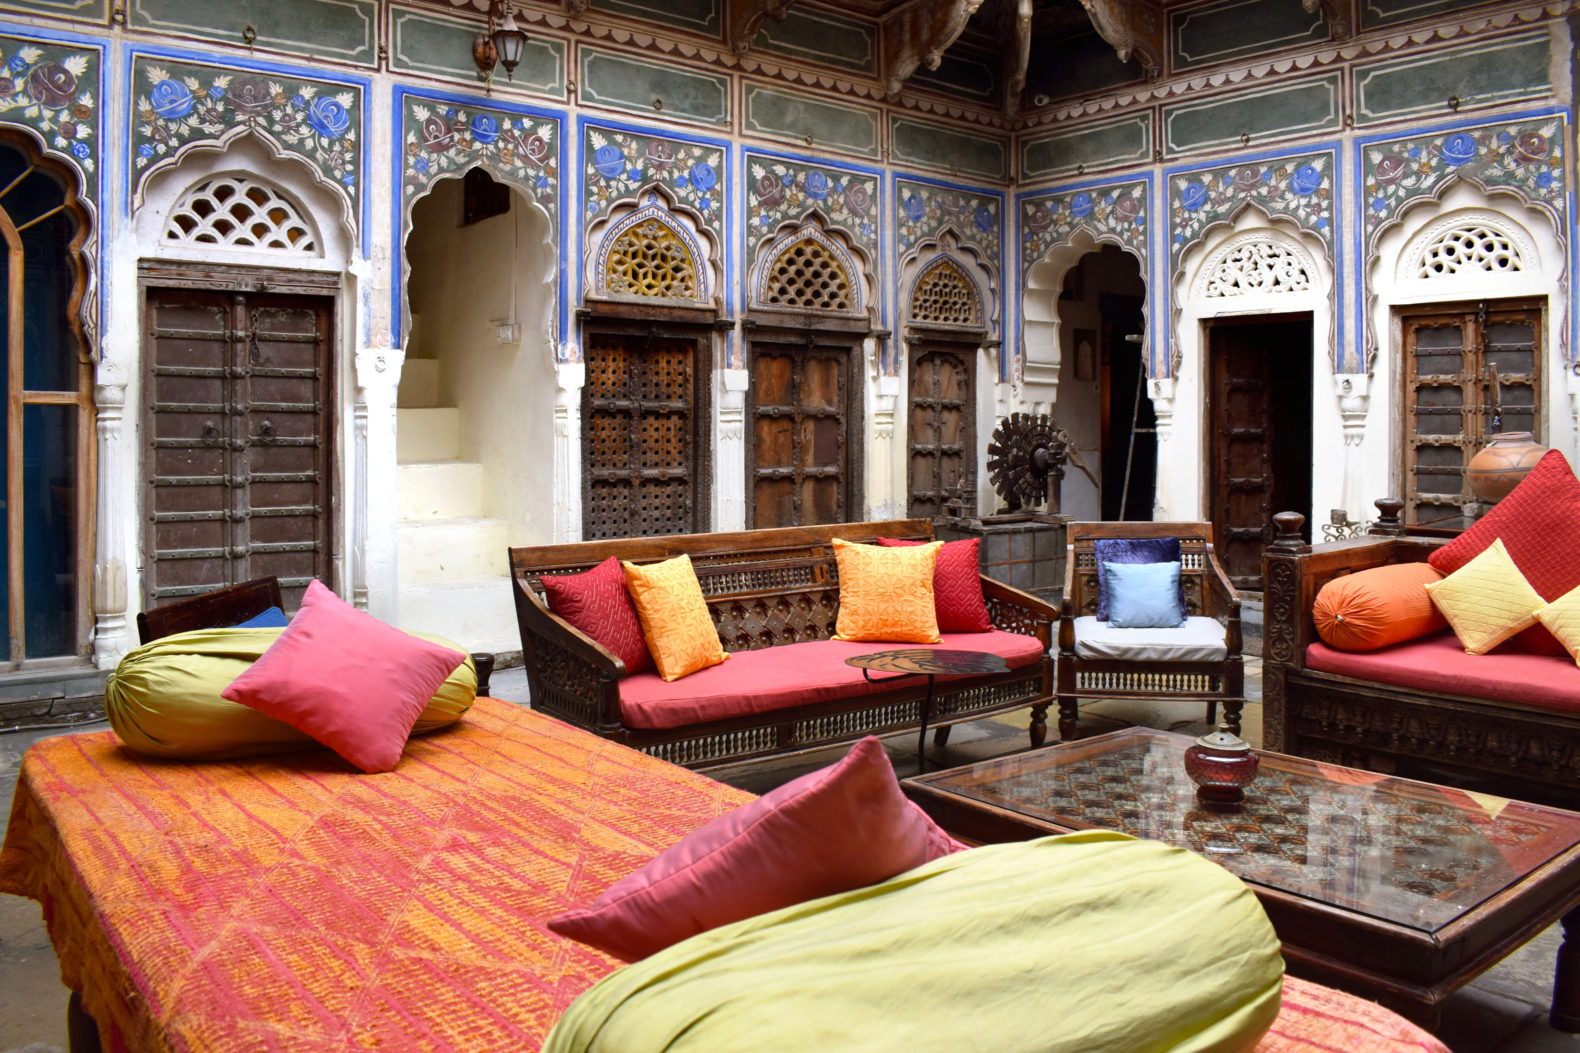 communal-room-couch-relax-area-india-vedaaranya haveli